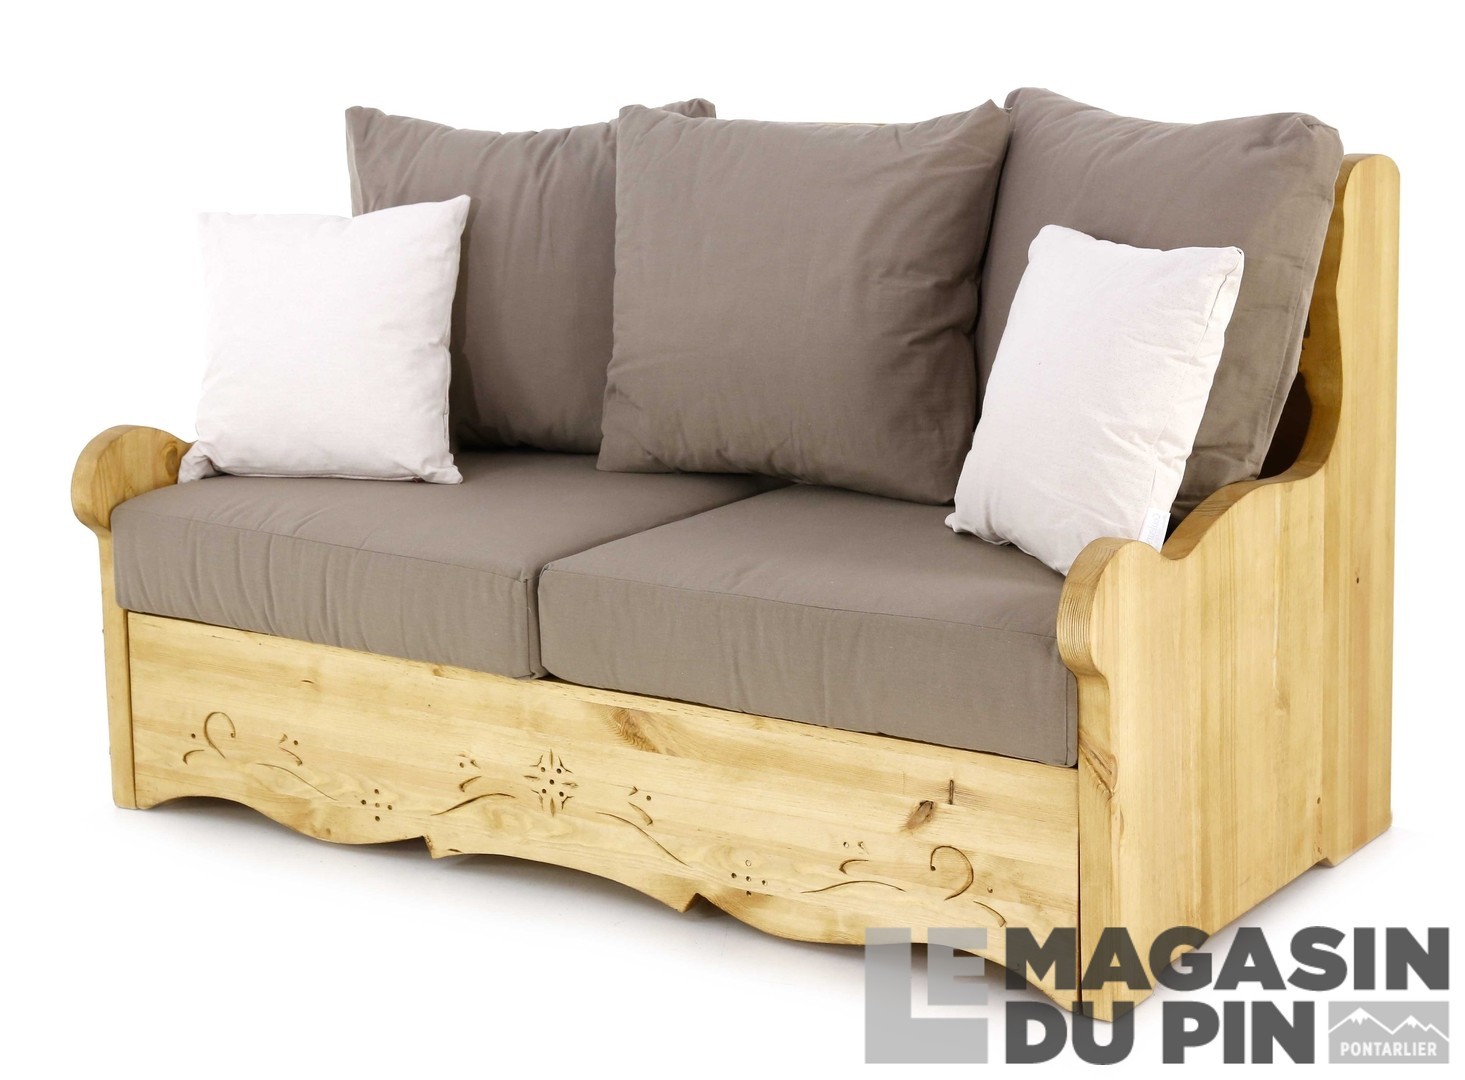 Canap s et fauteuils en pin massif le magasin du pin for Canape upload